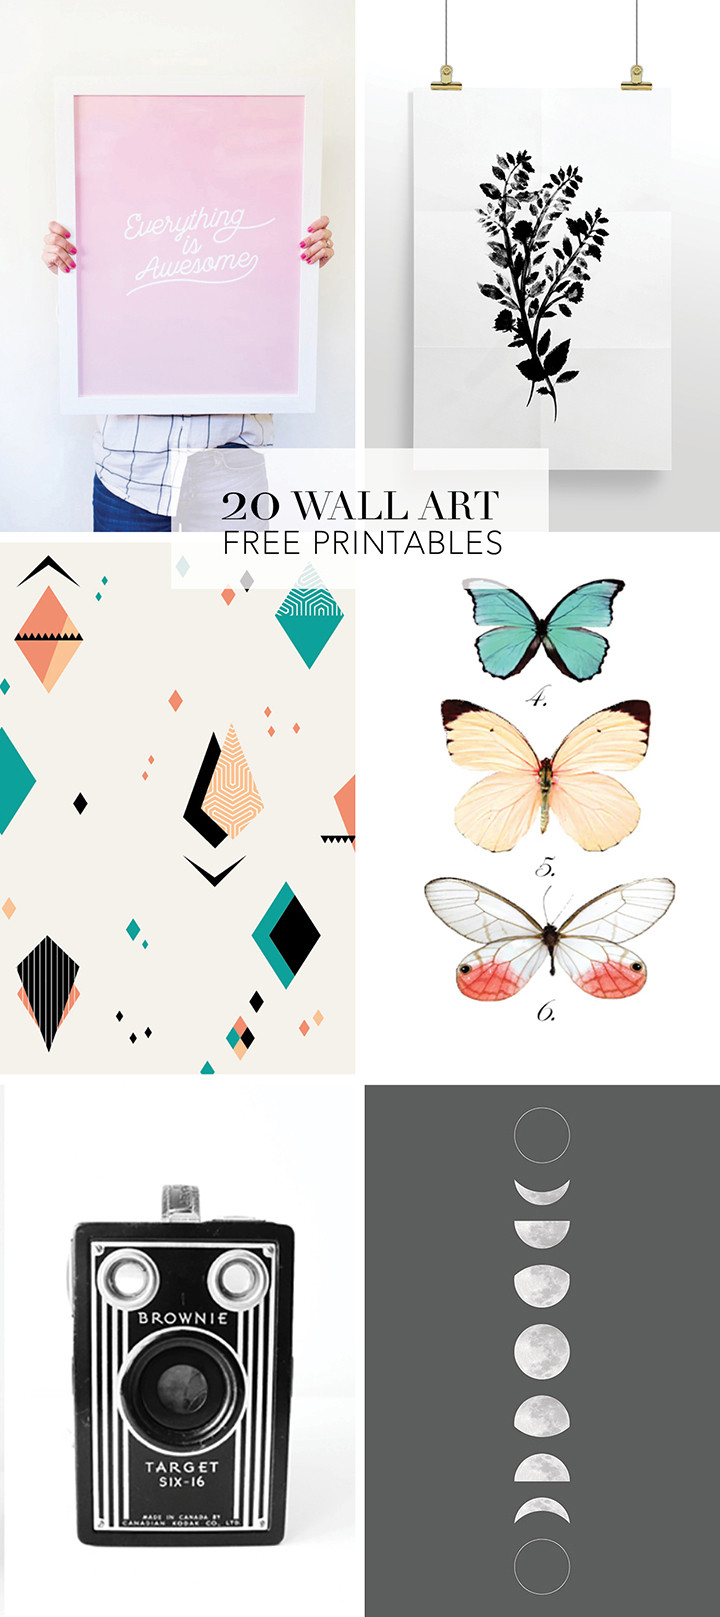 Best ideas about Printable Wall Art . Save or Pin Alice and Lois20 Favorite Wall Art Free Printables Alice Now.